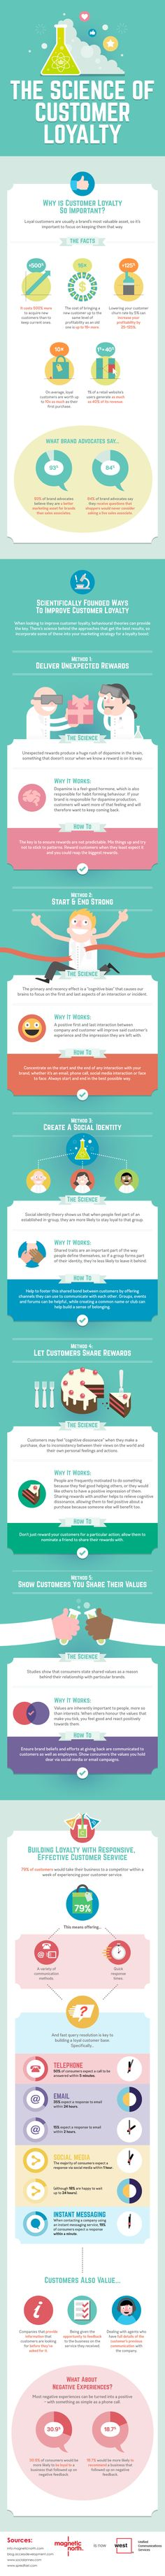 The Science of Customer Loyalty Infographic Marketing Mail, Business Marketing, Business Tips, Online Business, Marketing Ideas, Ignorance, Customer Experience, Customer Service, User Experience